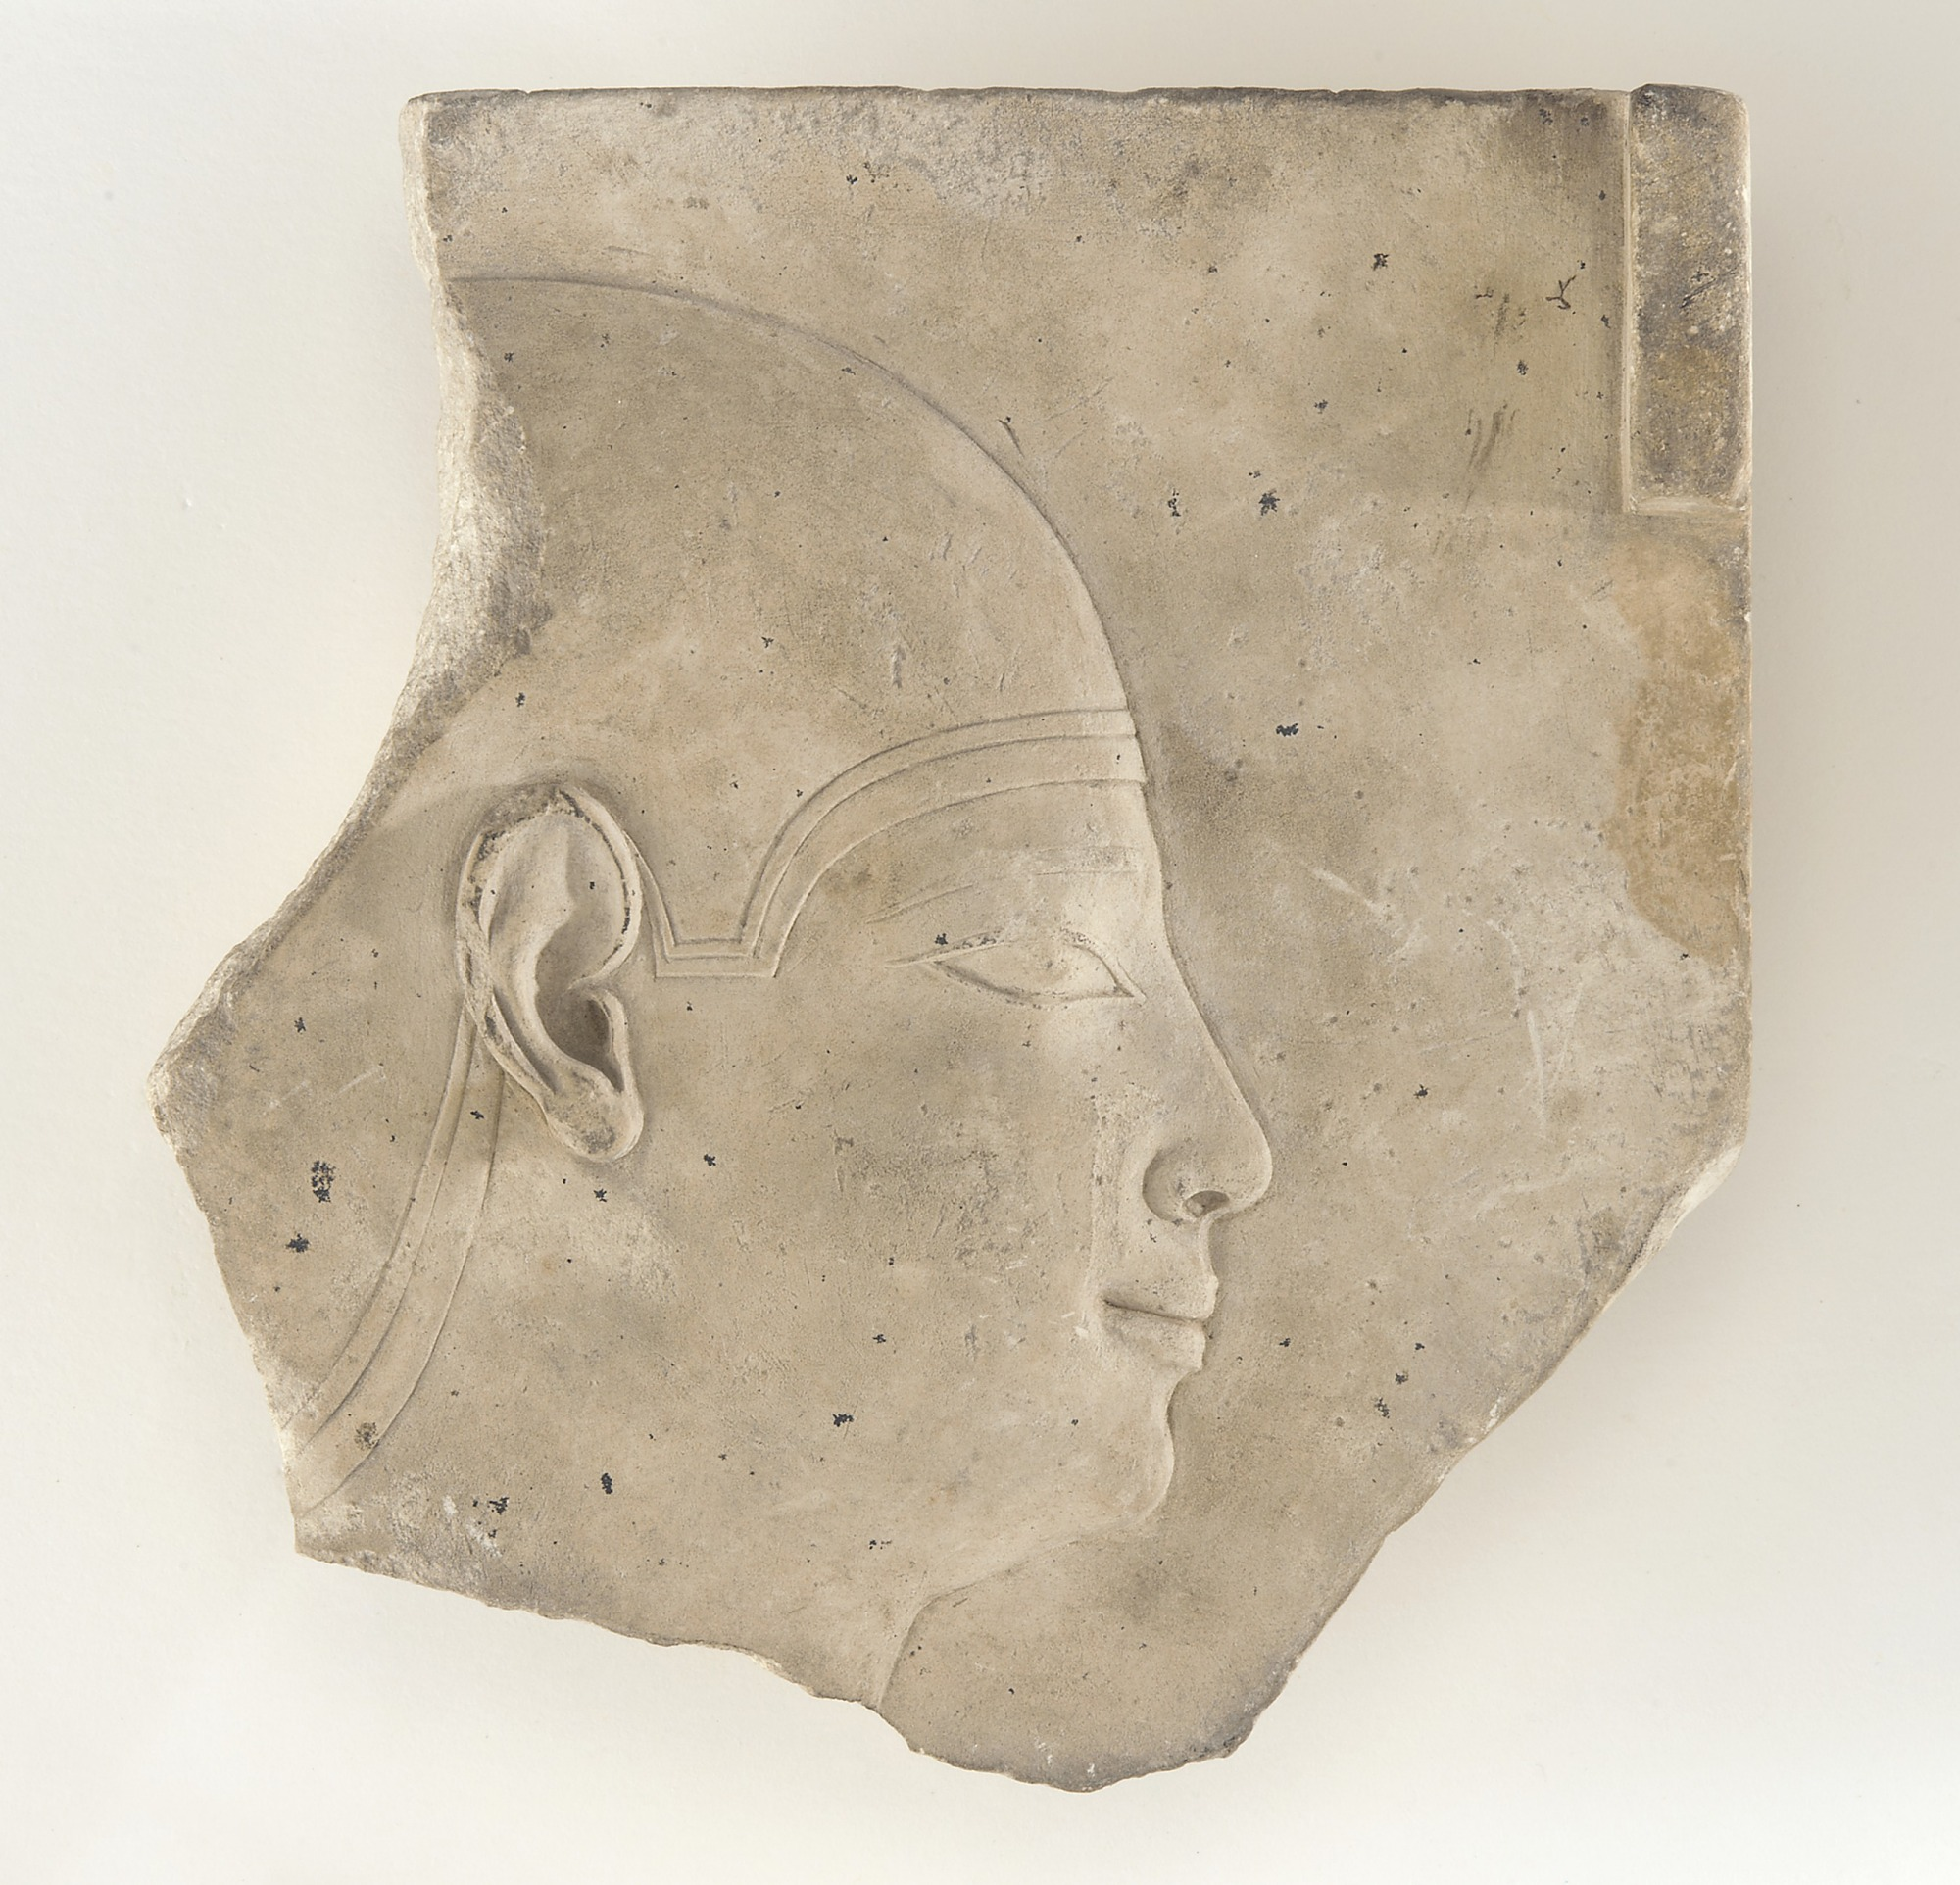 : Sculptor's model depicting male head